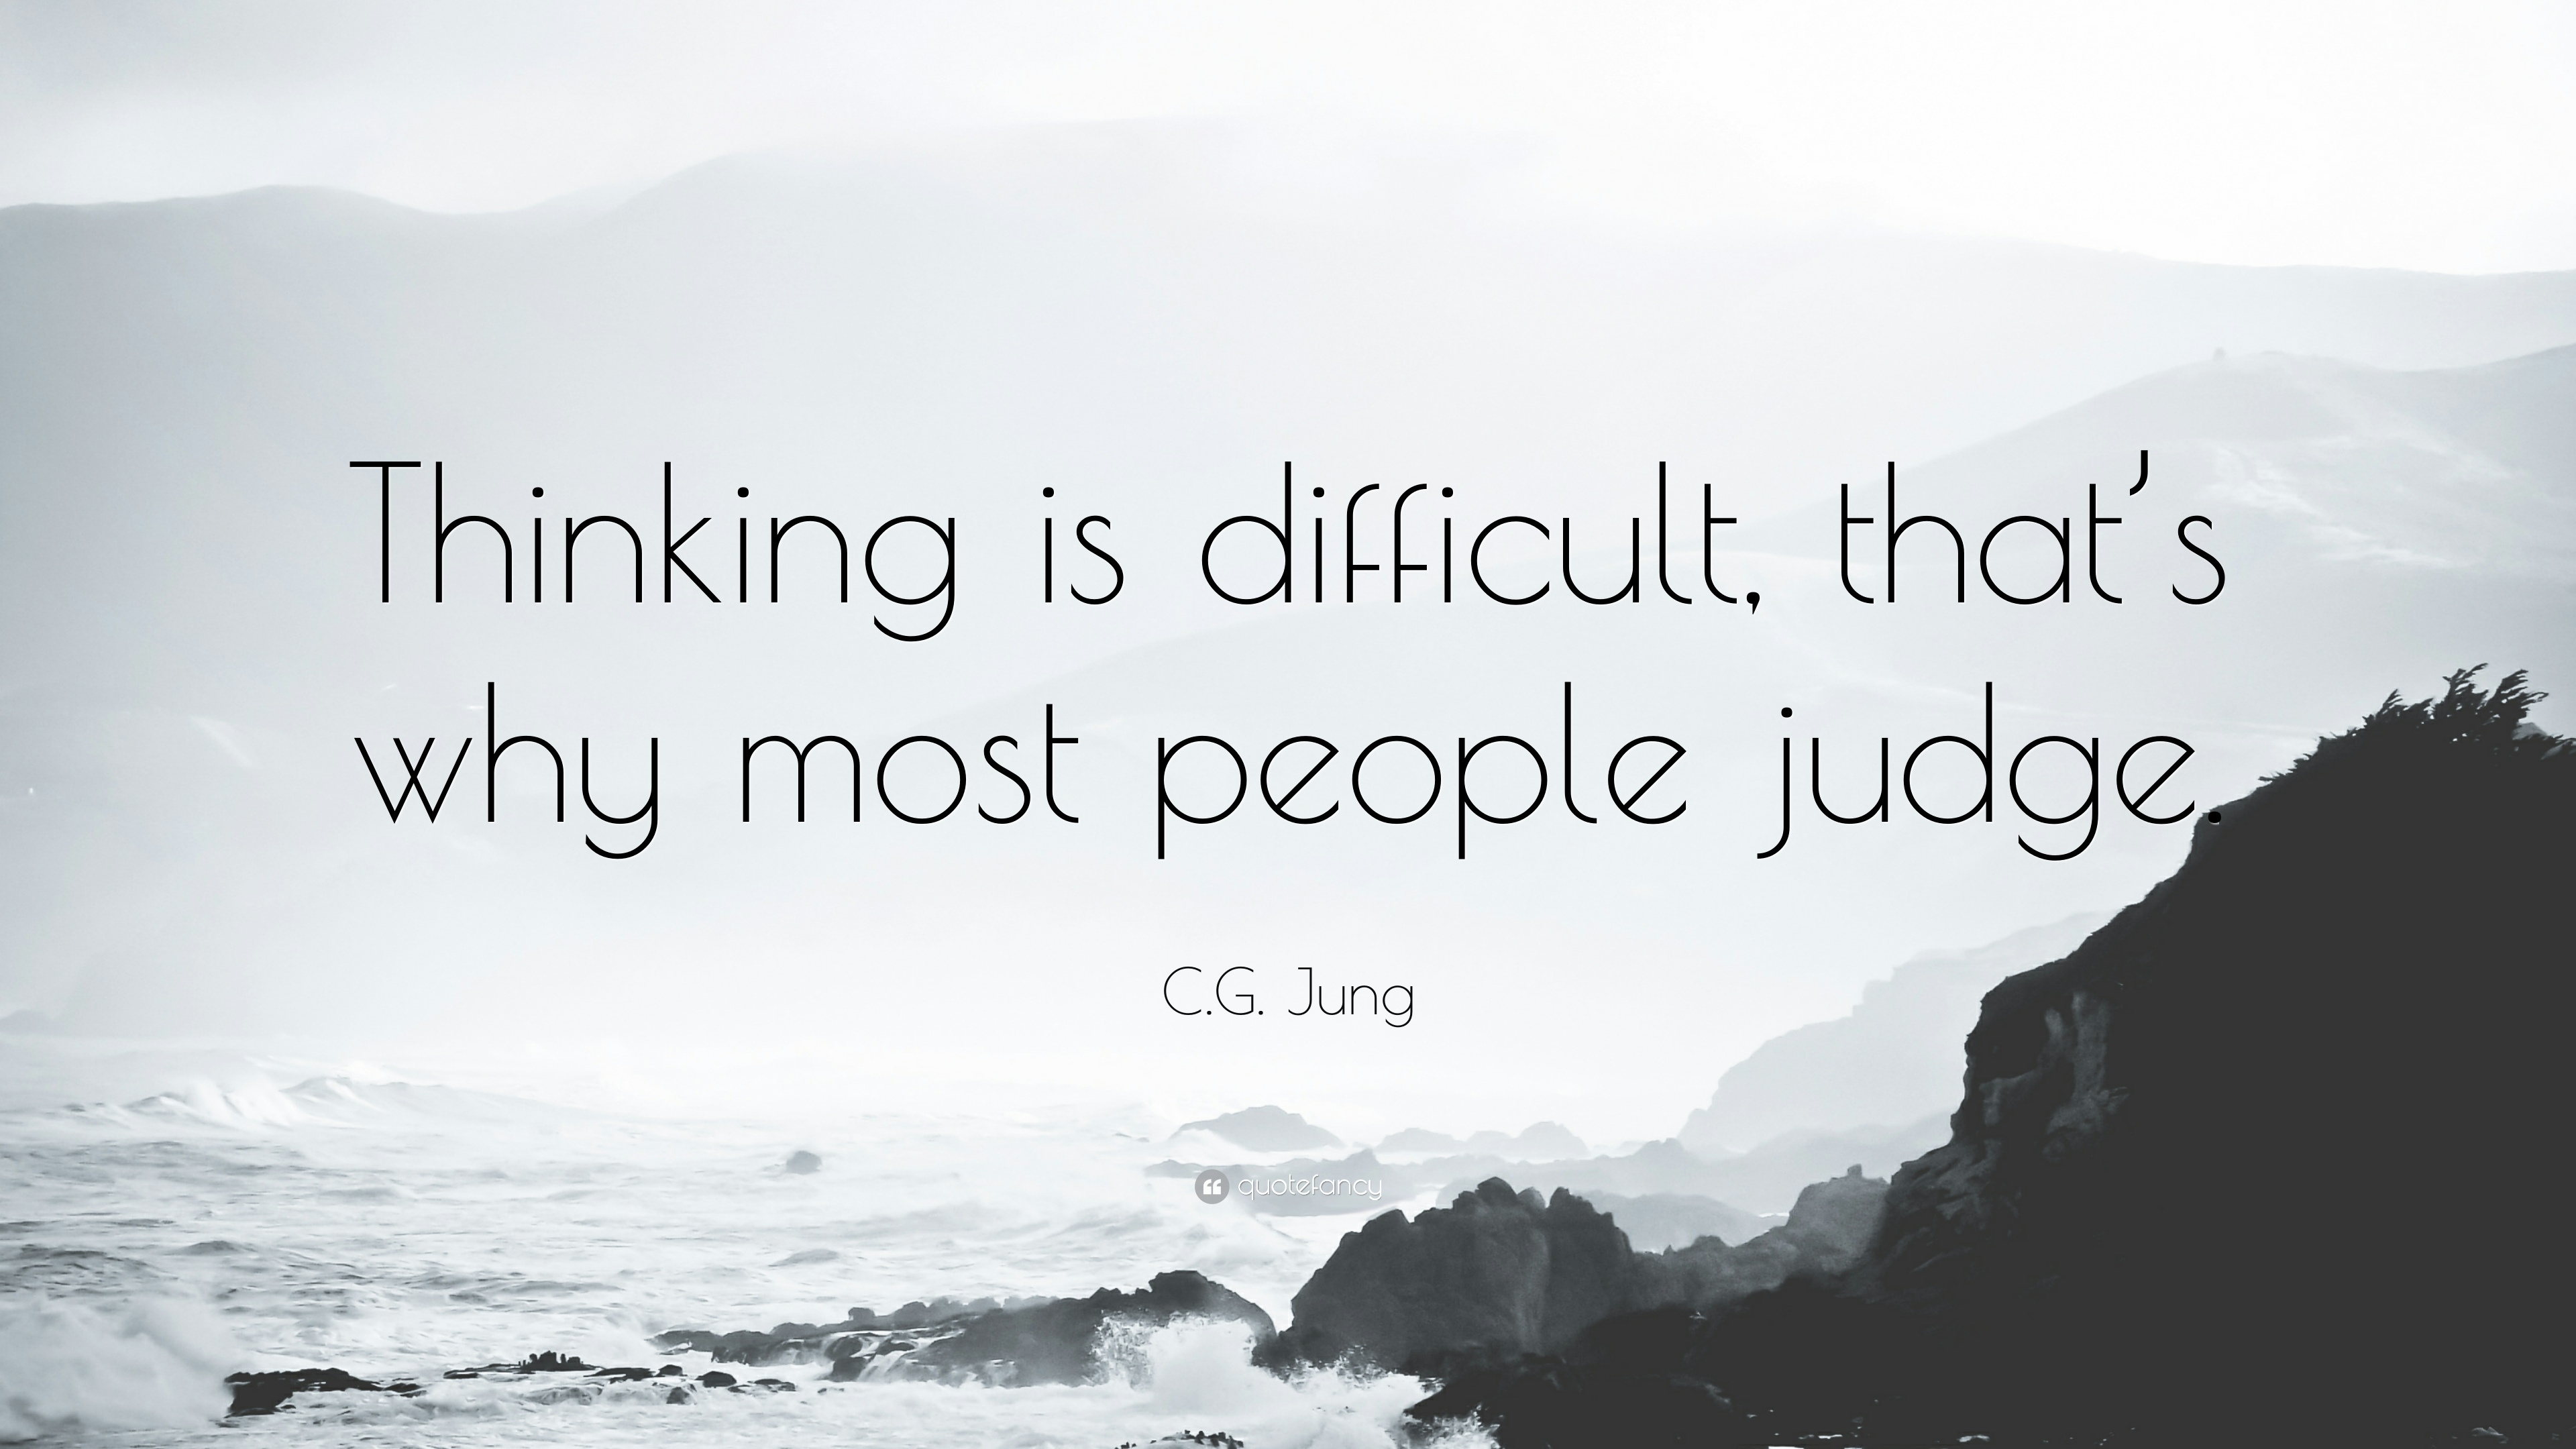 C.G. Jung Quote: Thinking is difficult, thats why most